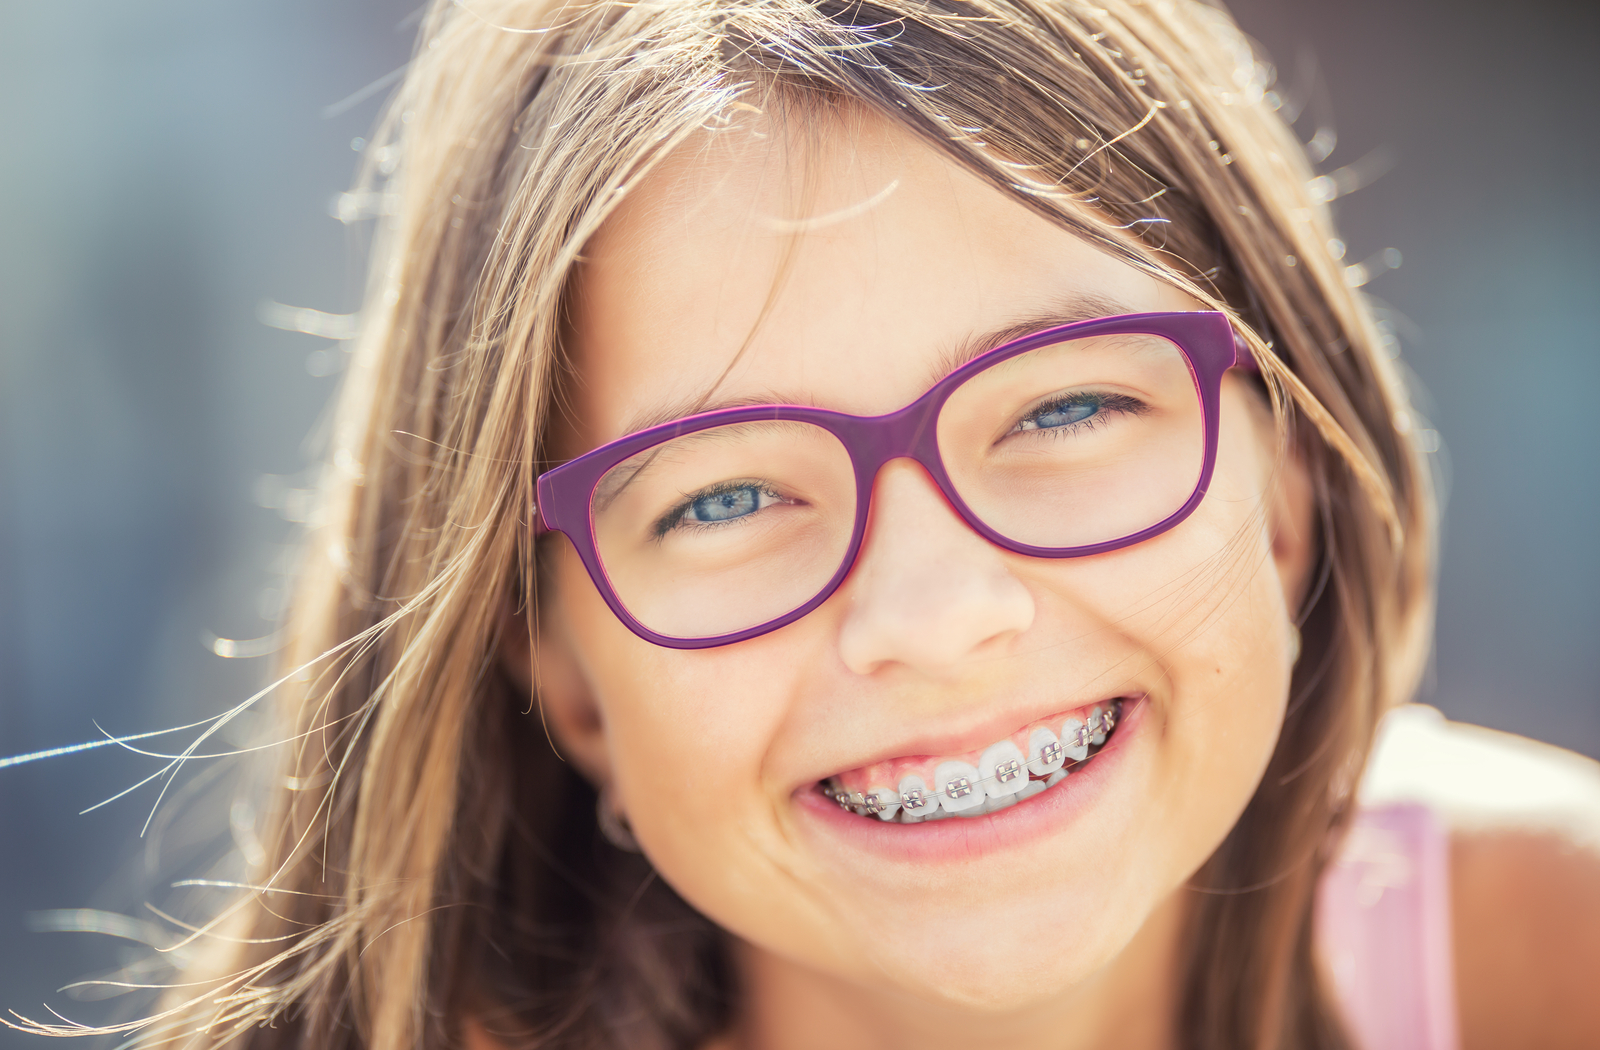 blonde child smiling with braces wearing purple glasses